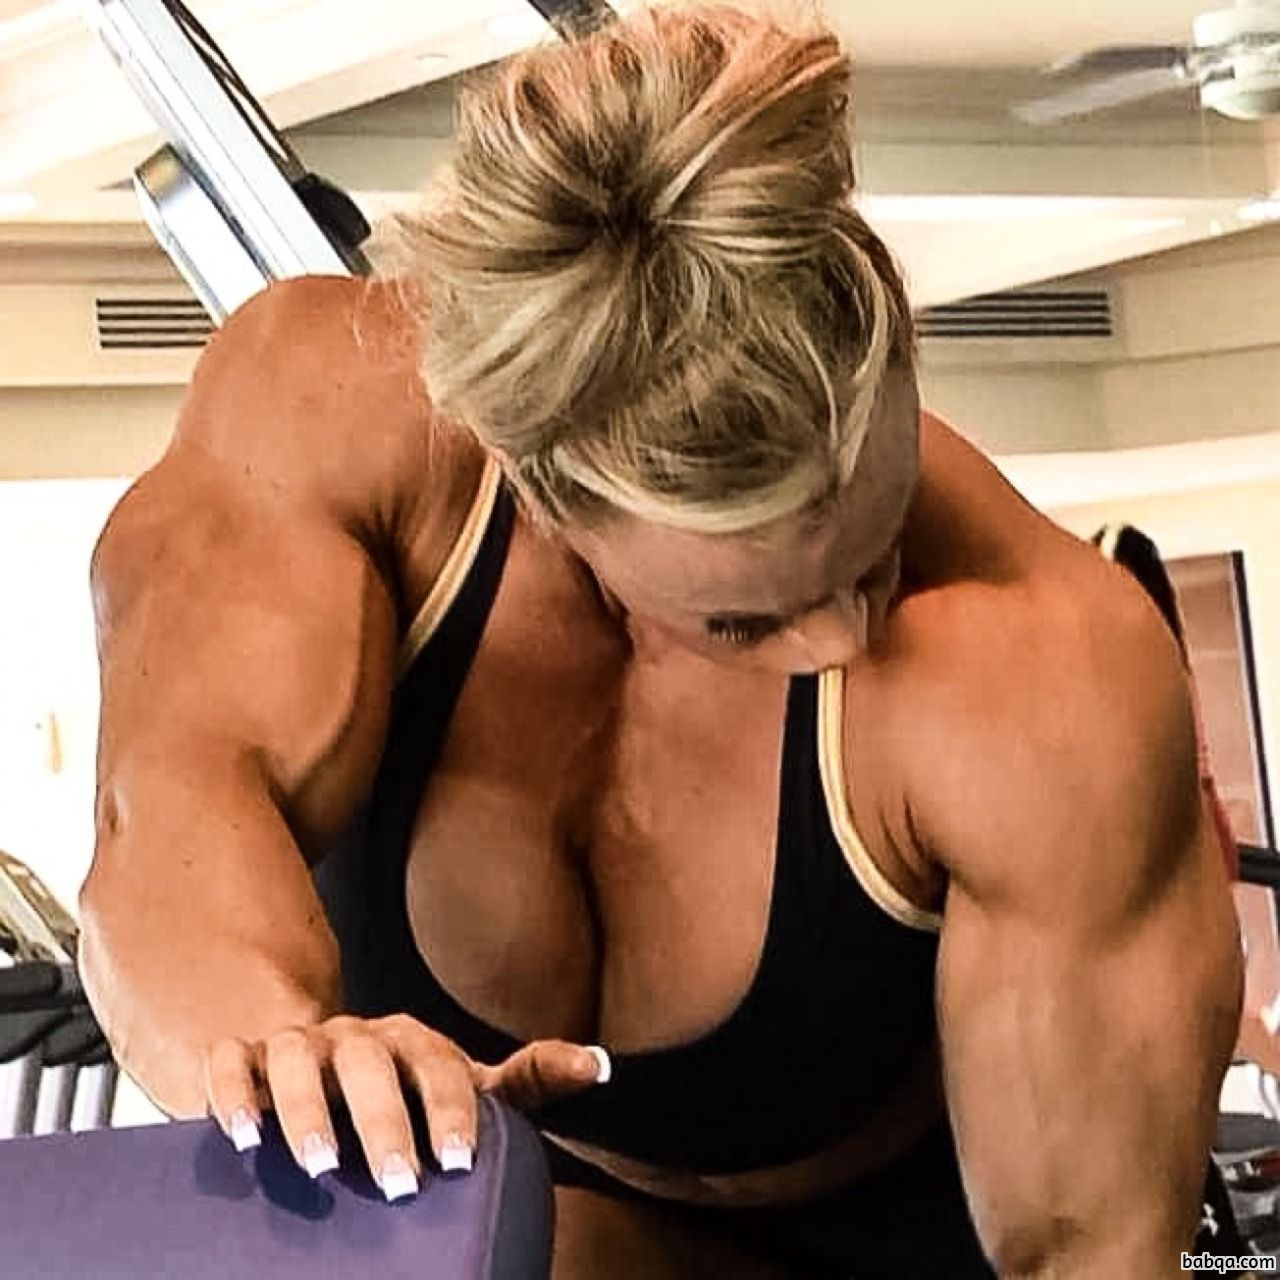 hottest female bodybuilder with muscular body and toned booty picture from reddit